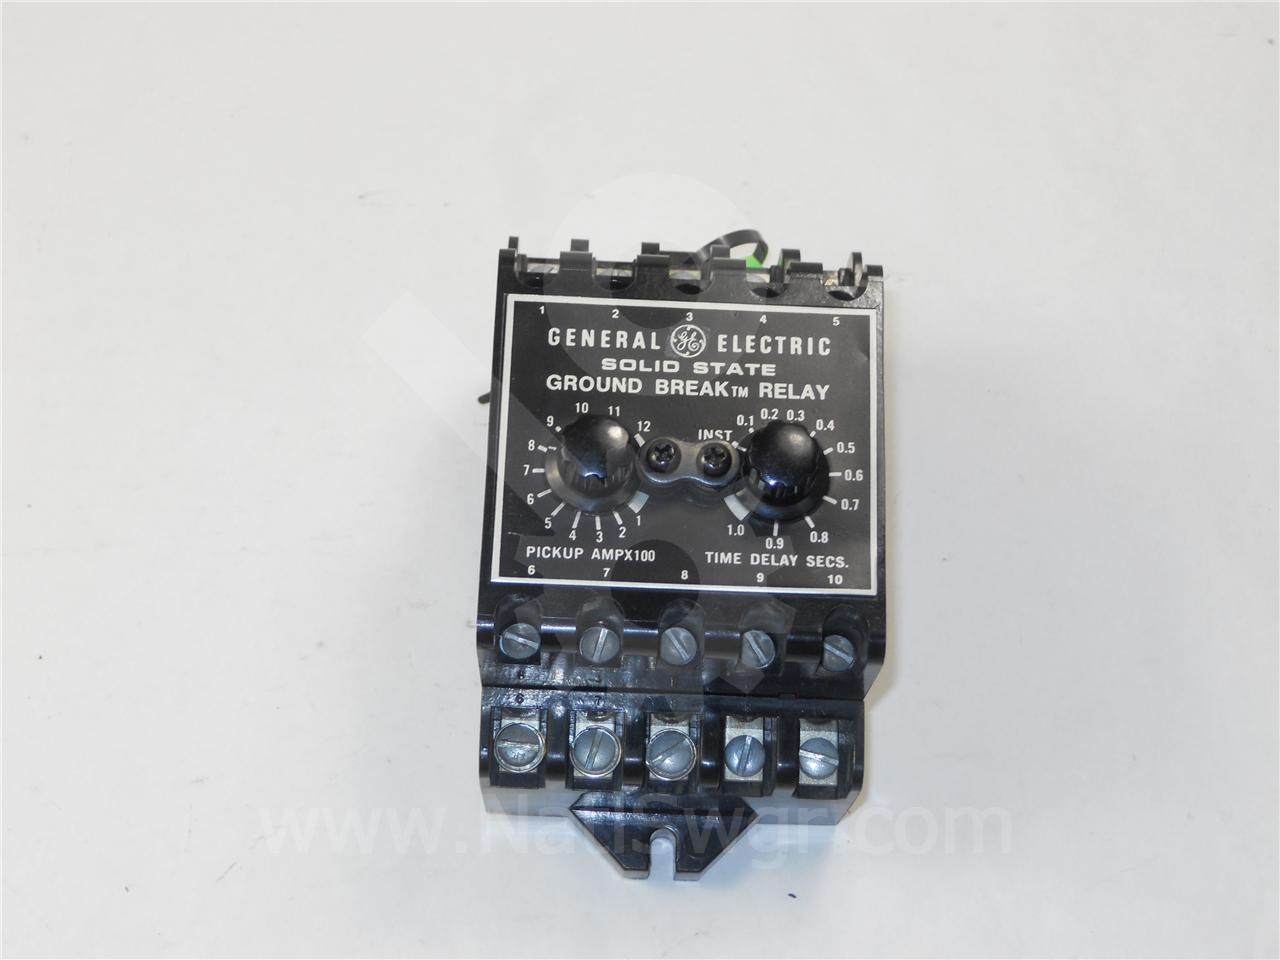 General Electric Ge Tgsr Ground Fault Relay Solid State Theory